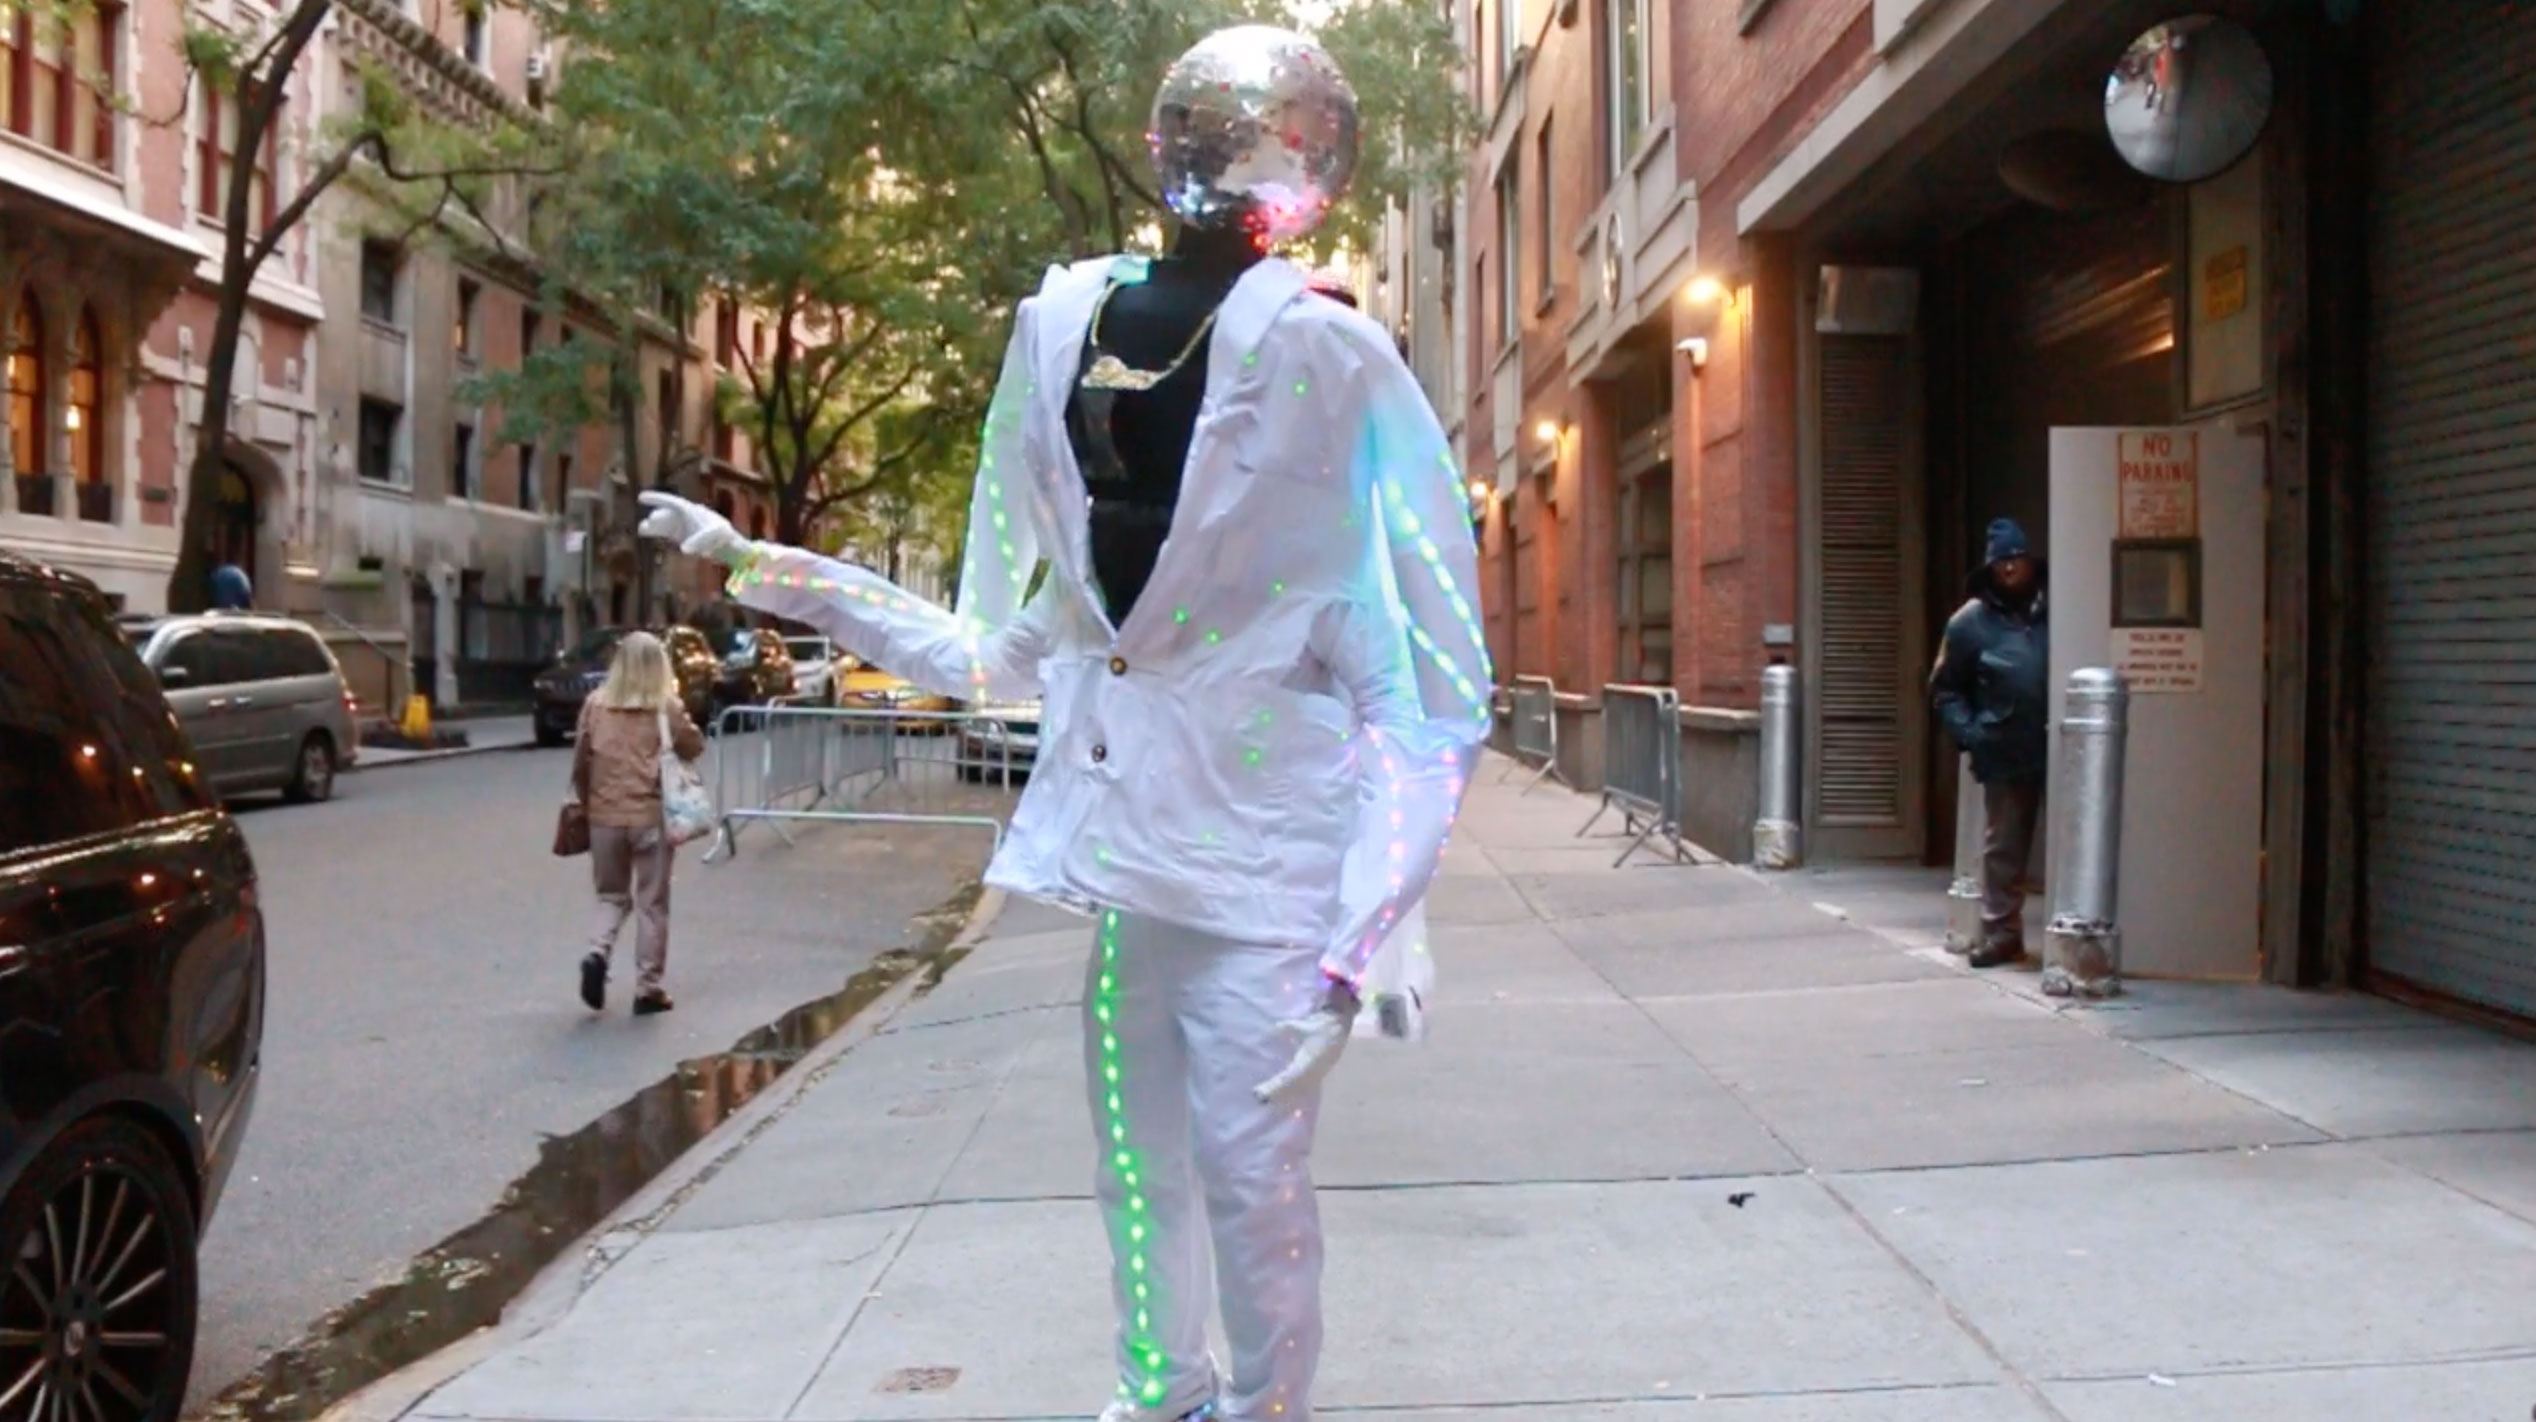 <div class='meta'><div class='origin-logo' data-origin='none'></div><span class='caption-text' data-credit=''>One man created a disco-themed costume with built-in throwback music.</span></div>